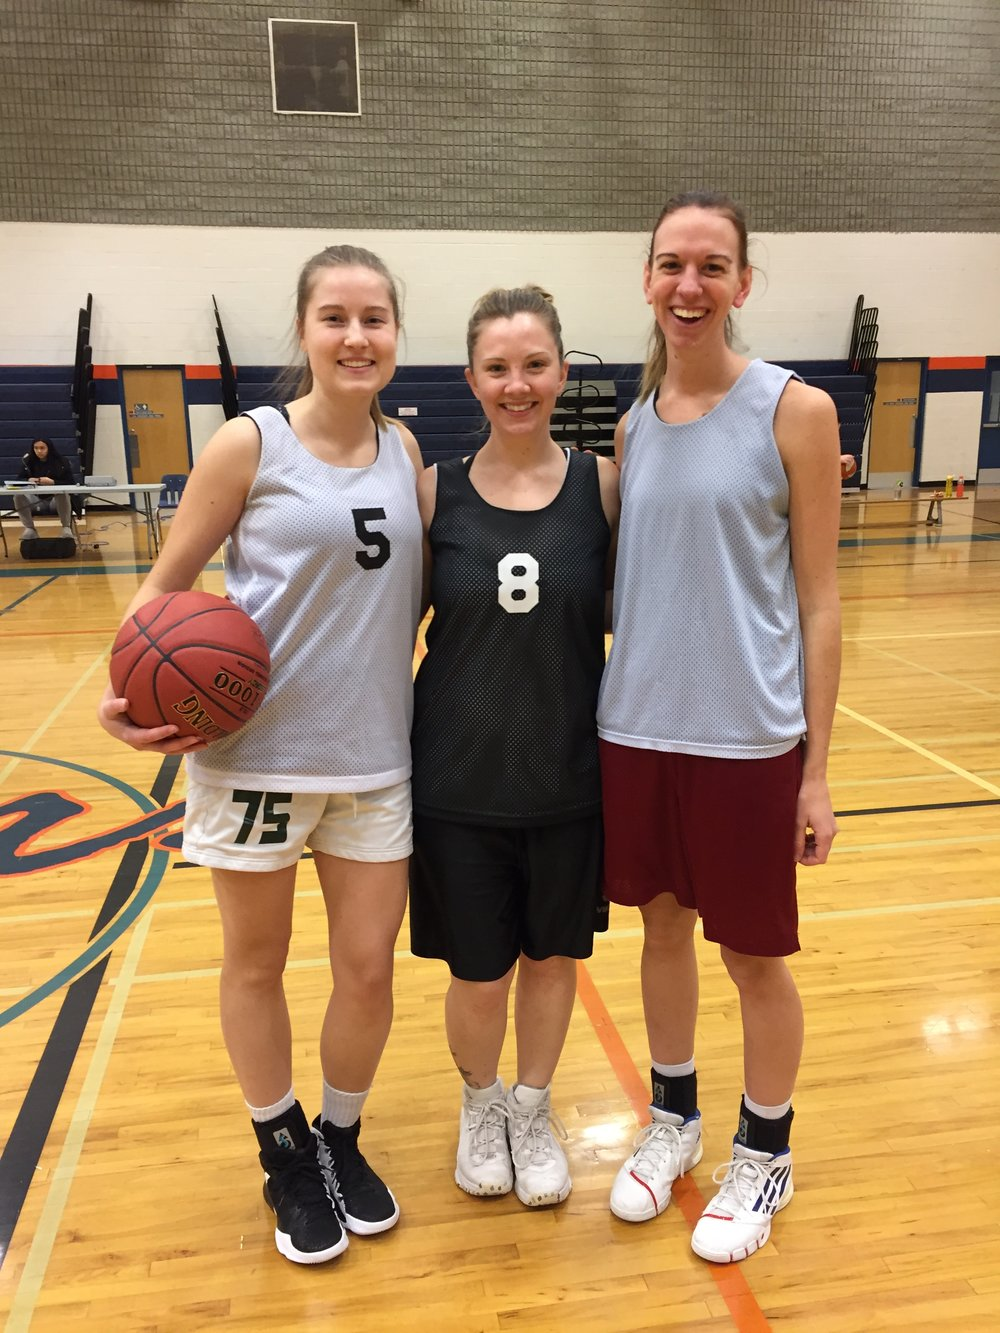 Sunday Basketball Games with Amber and Danielle - February 25